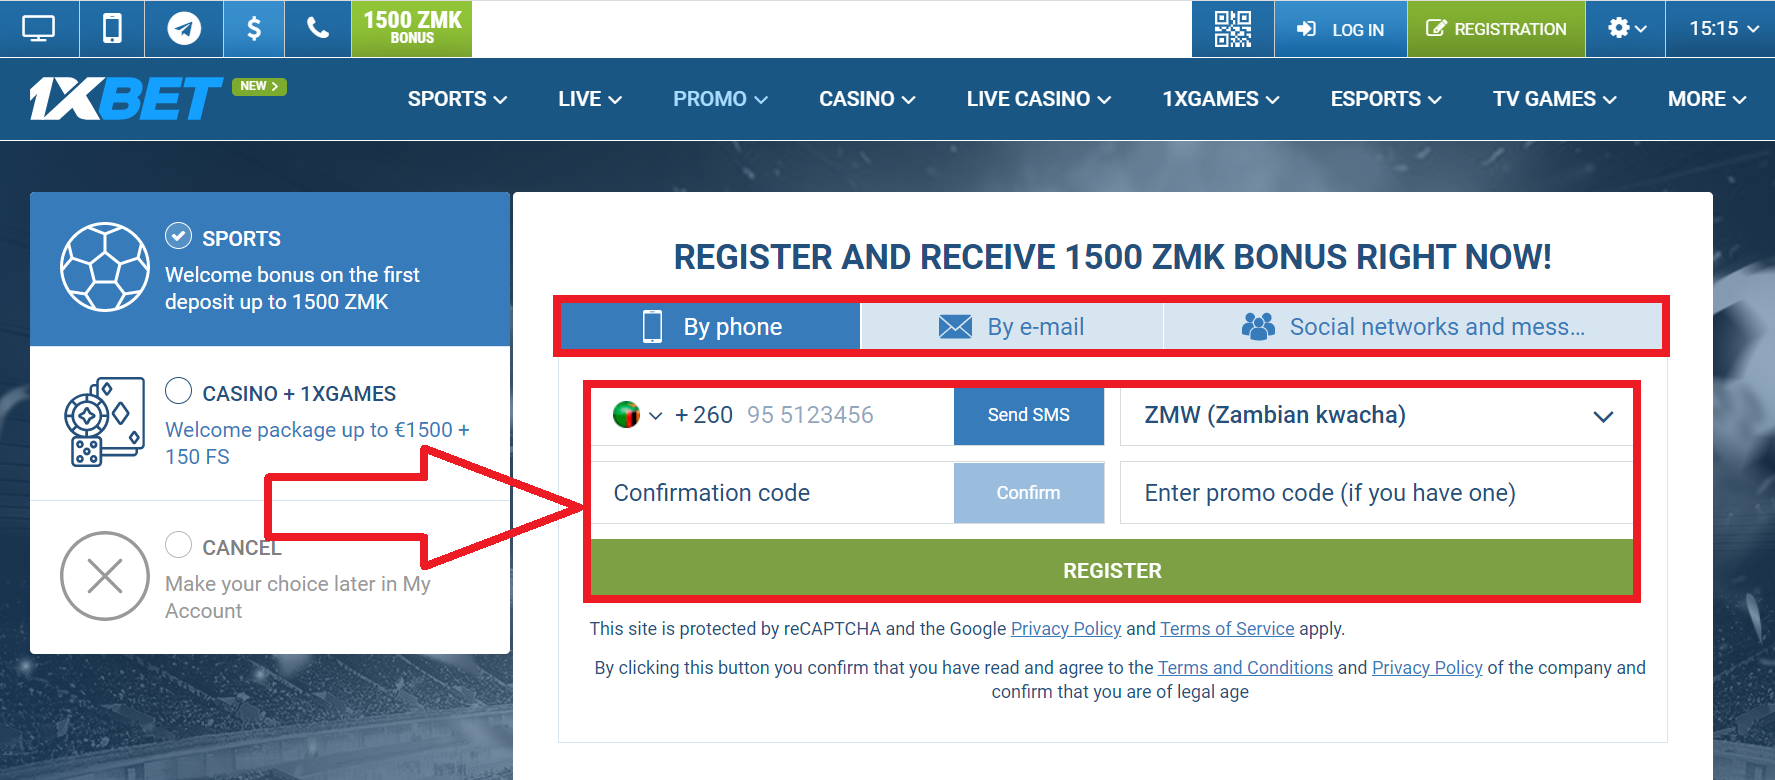 How to conduct the first sign up in 1xBet